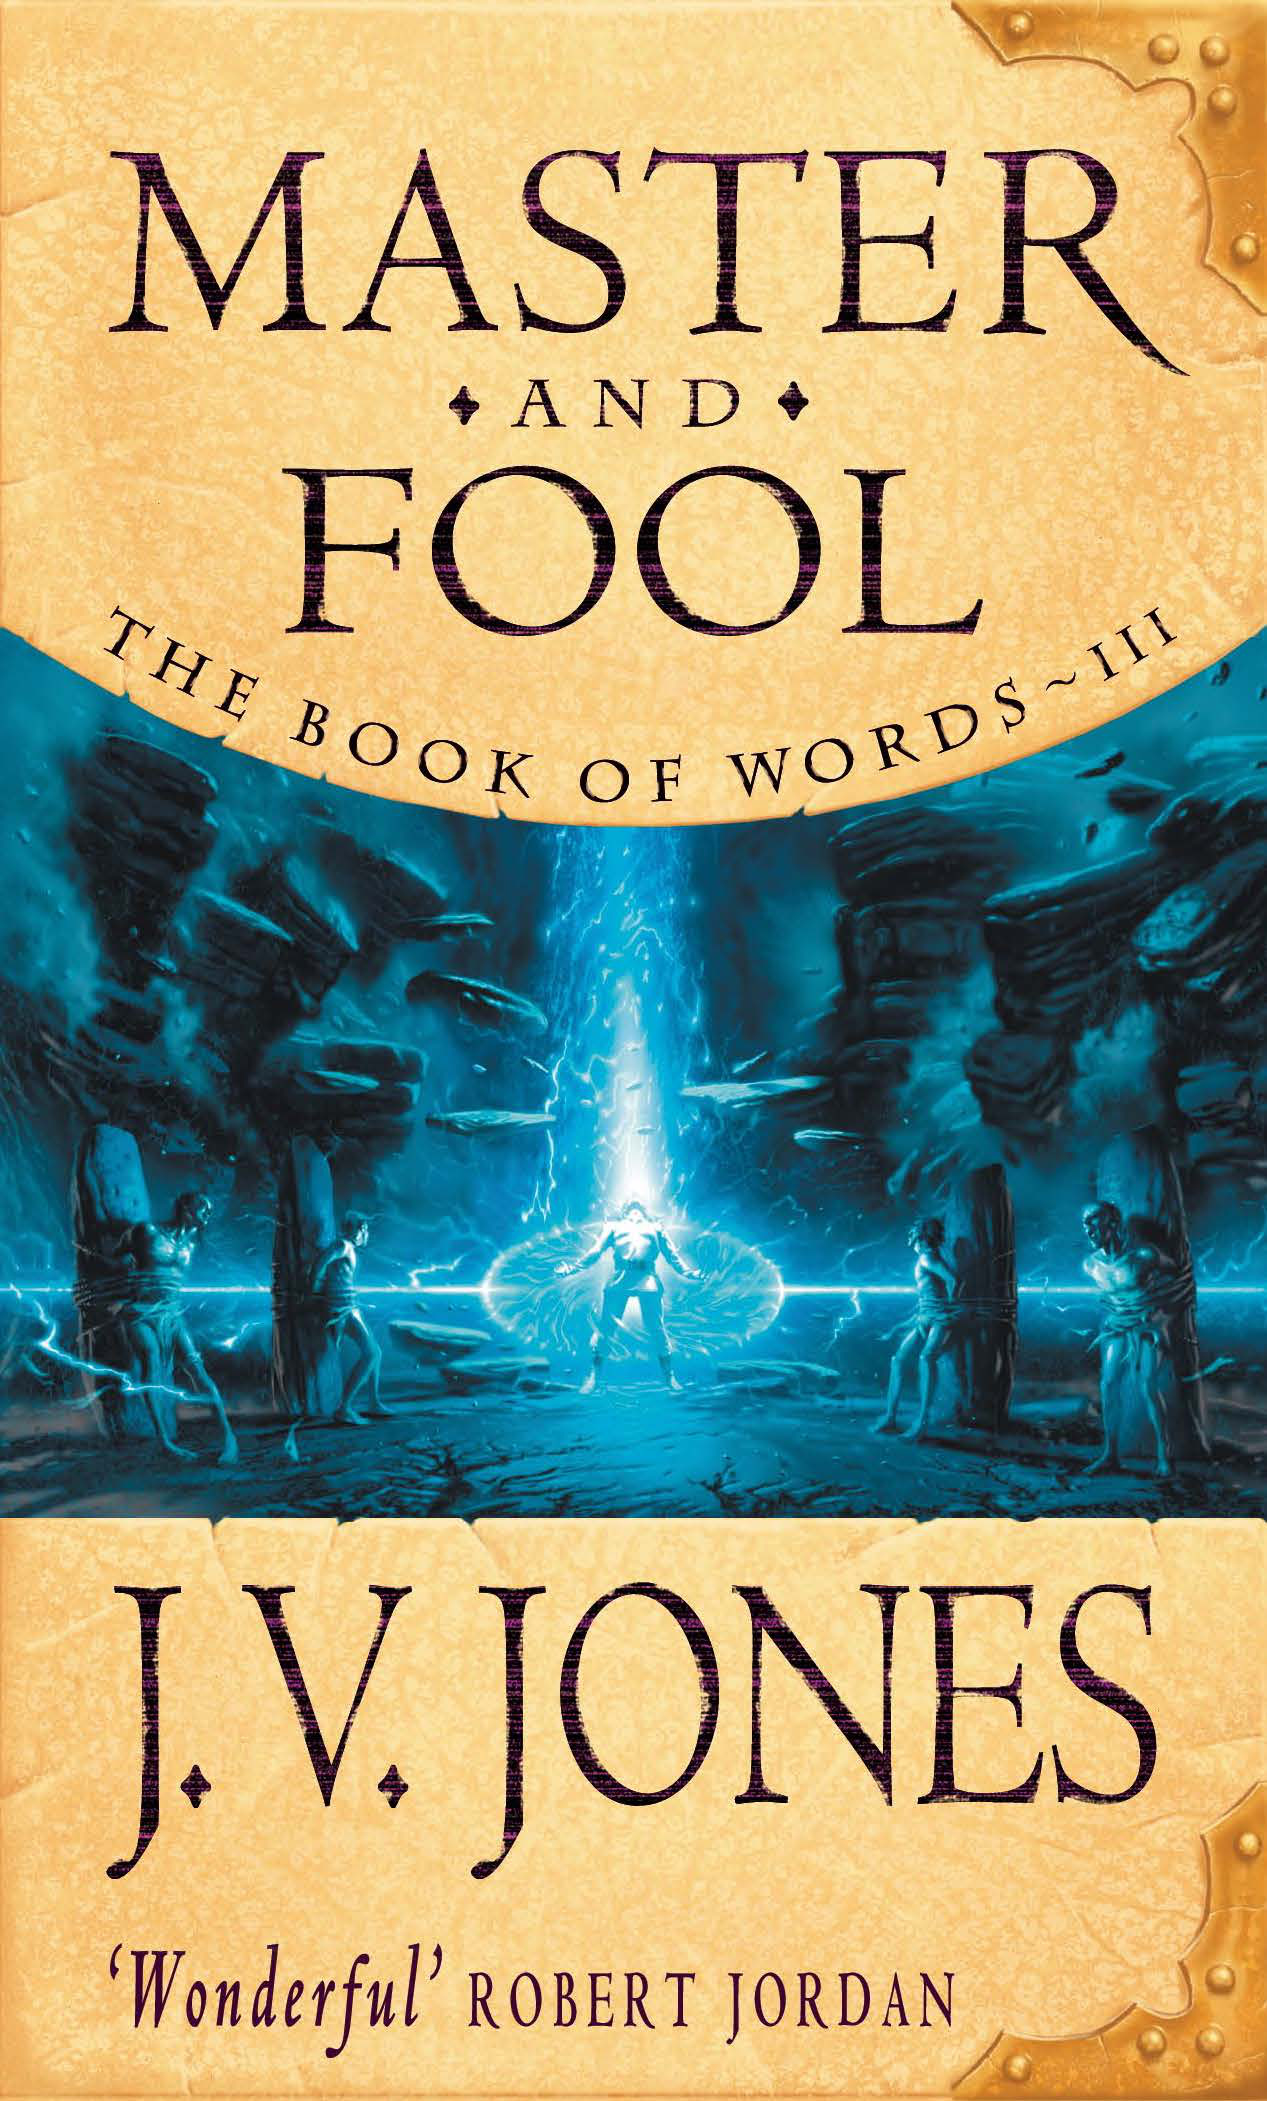 Master & Fool (Book of Words)